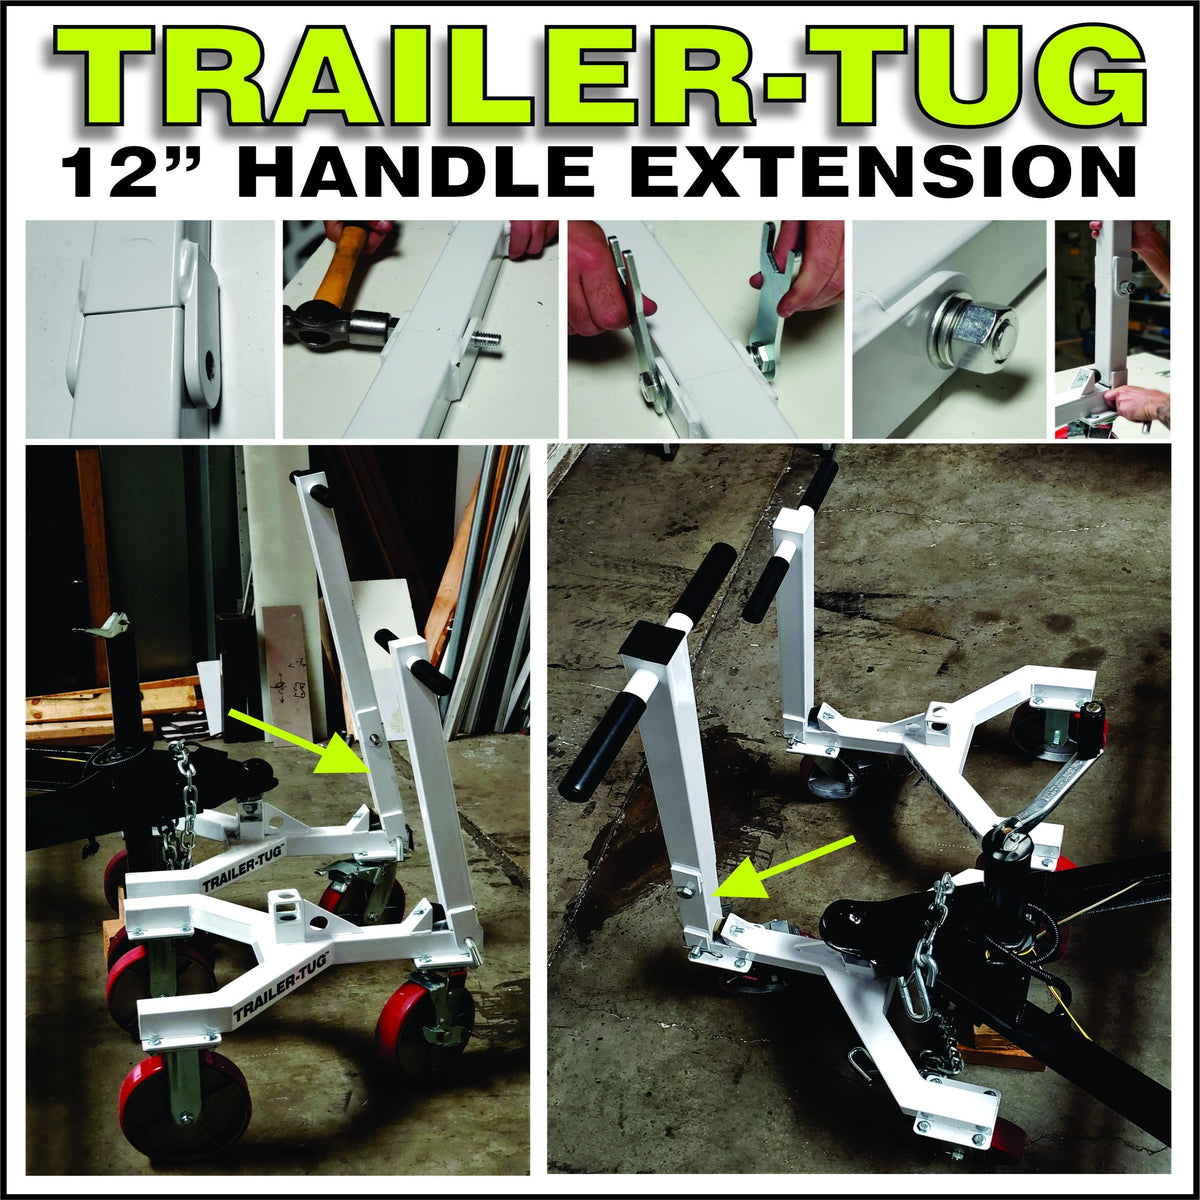 "Trailer-Tug 12"" Handle Extension"